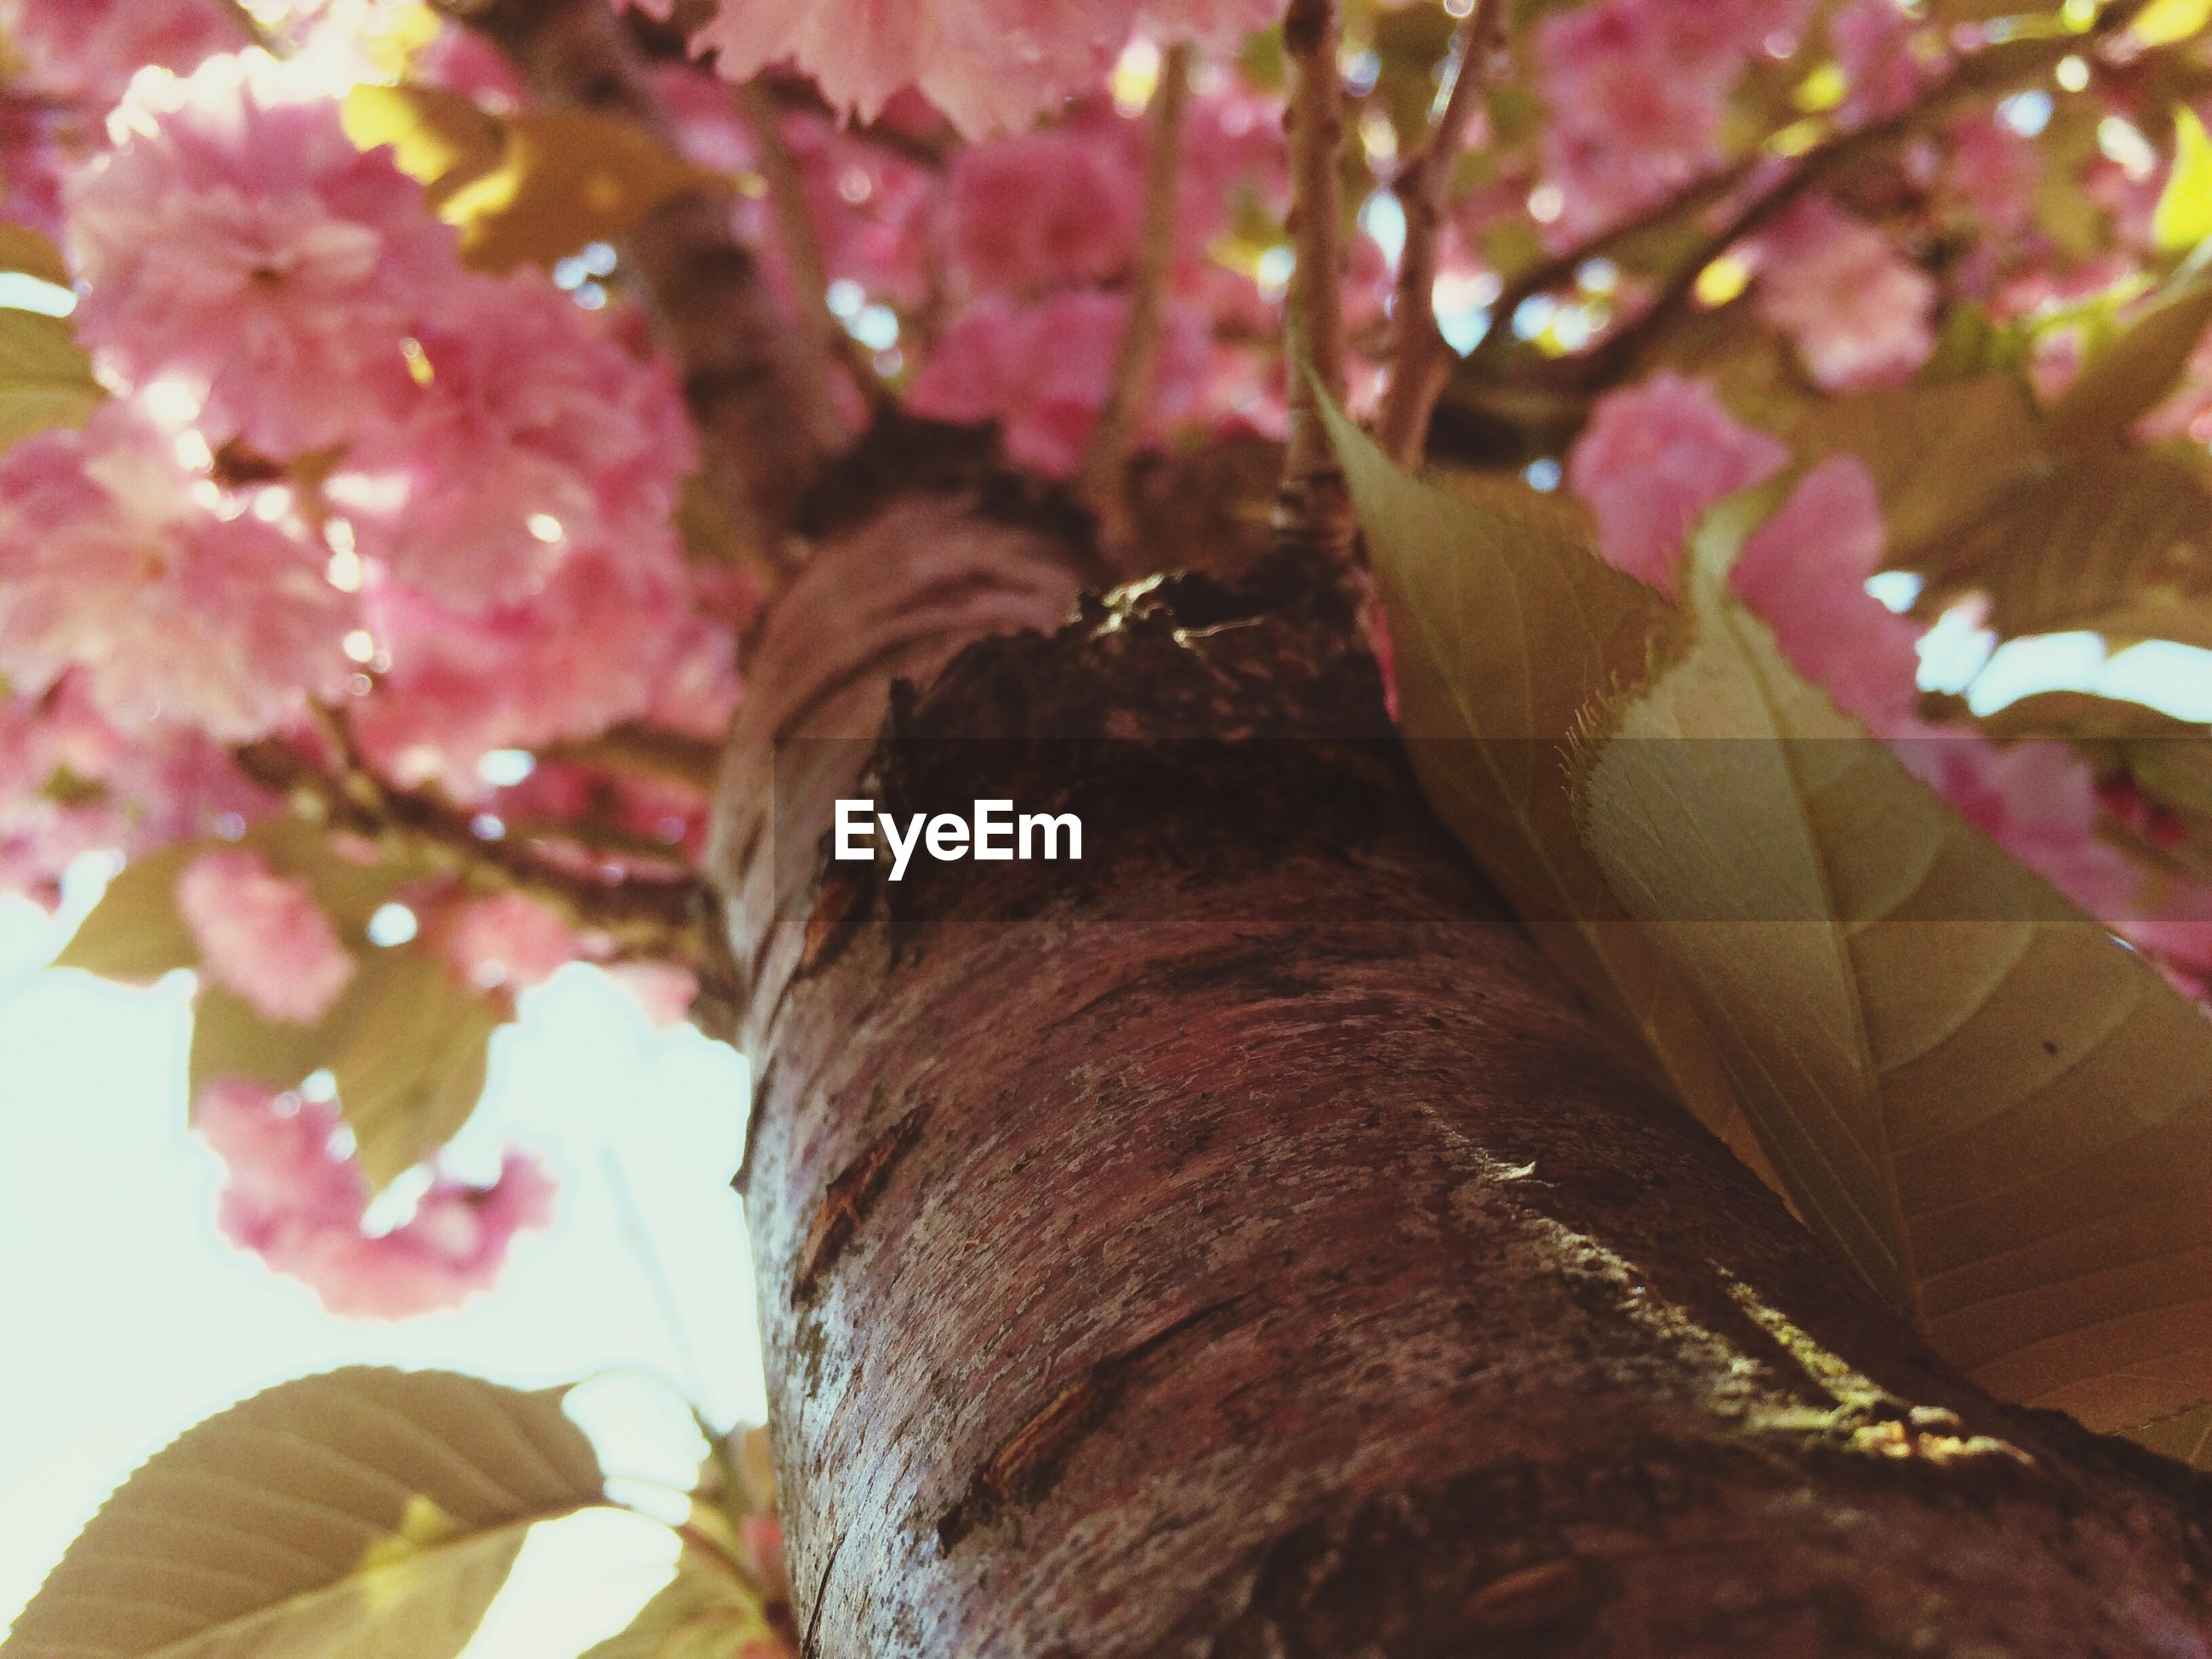 flower, freshness, close-up, focus on foreground, tree, part of, cropped, growth, nature, branch, fragility, beauty in nature, pink color, day, low angle view, petal, outdoors, blossom, leaf, selective focus